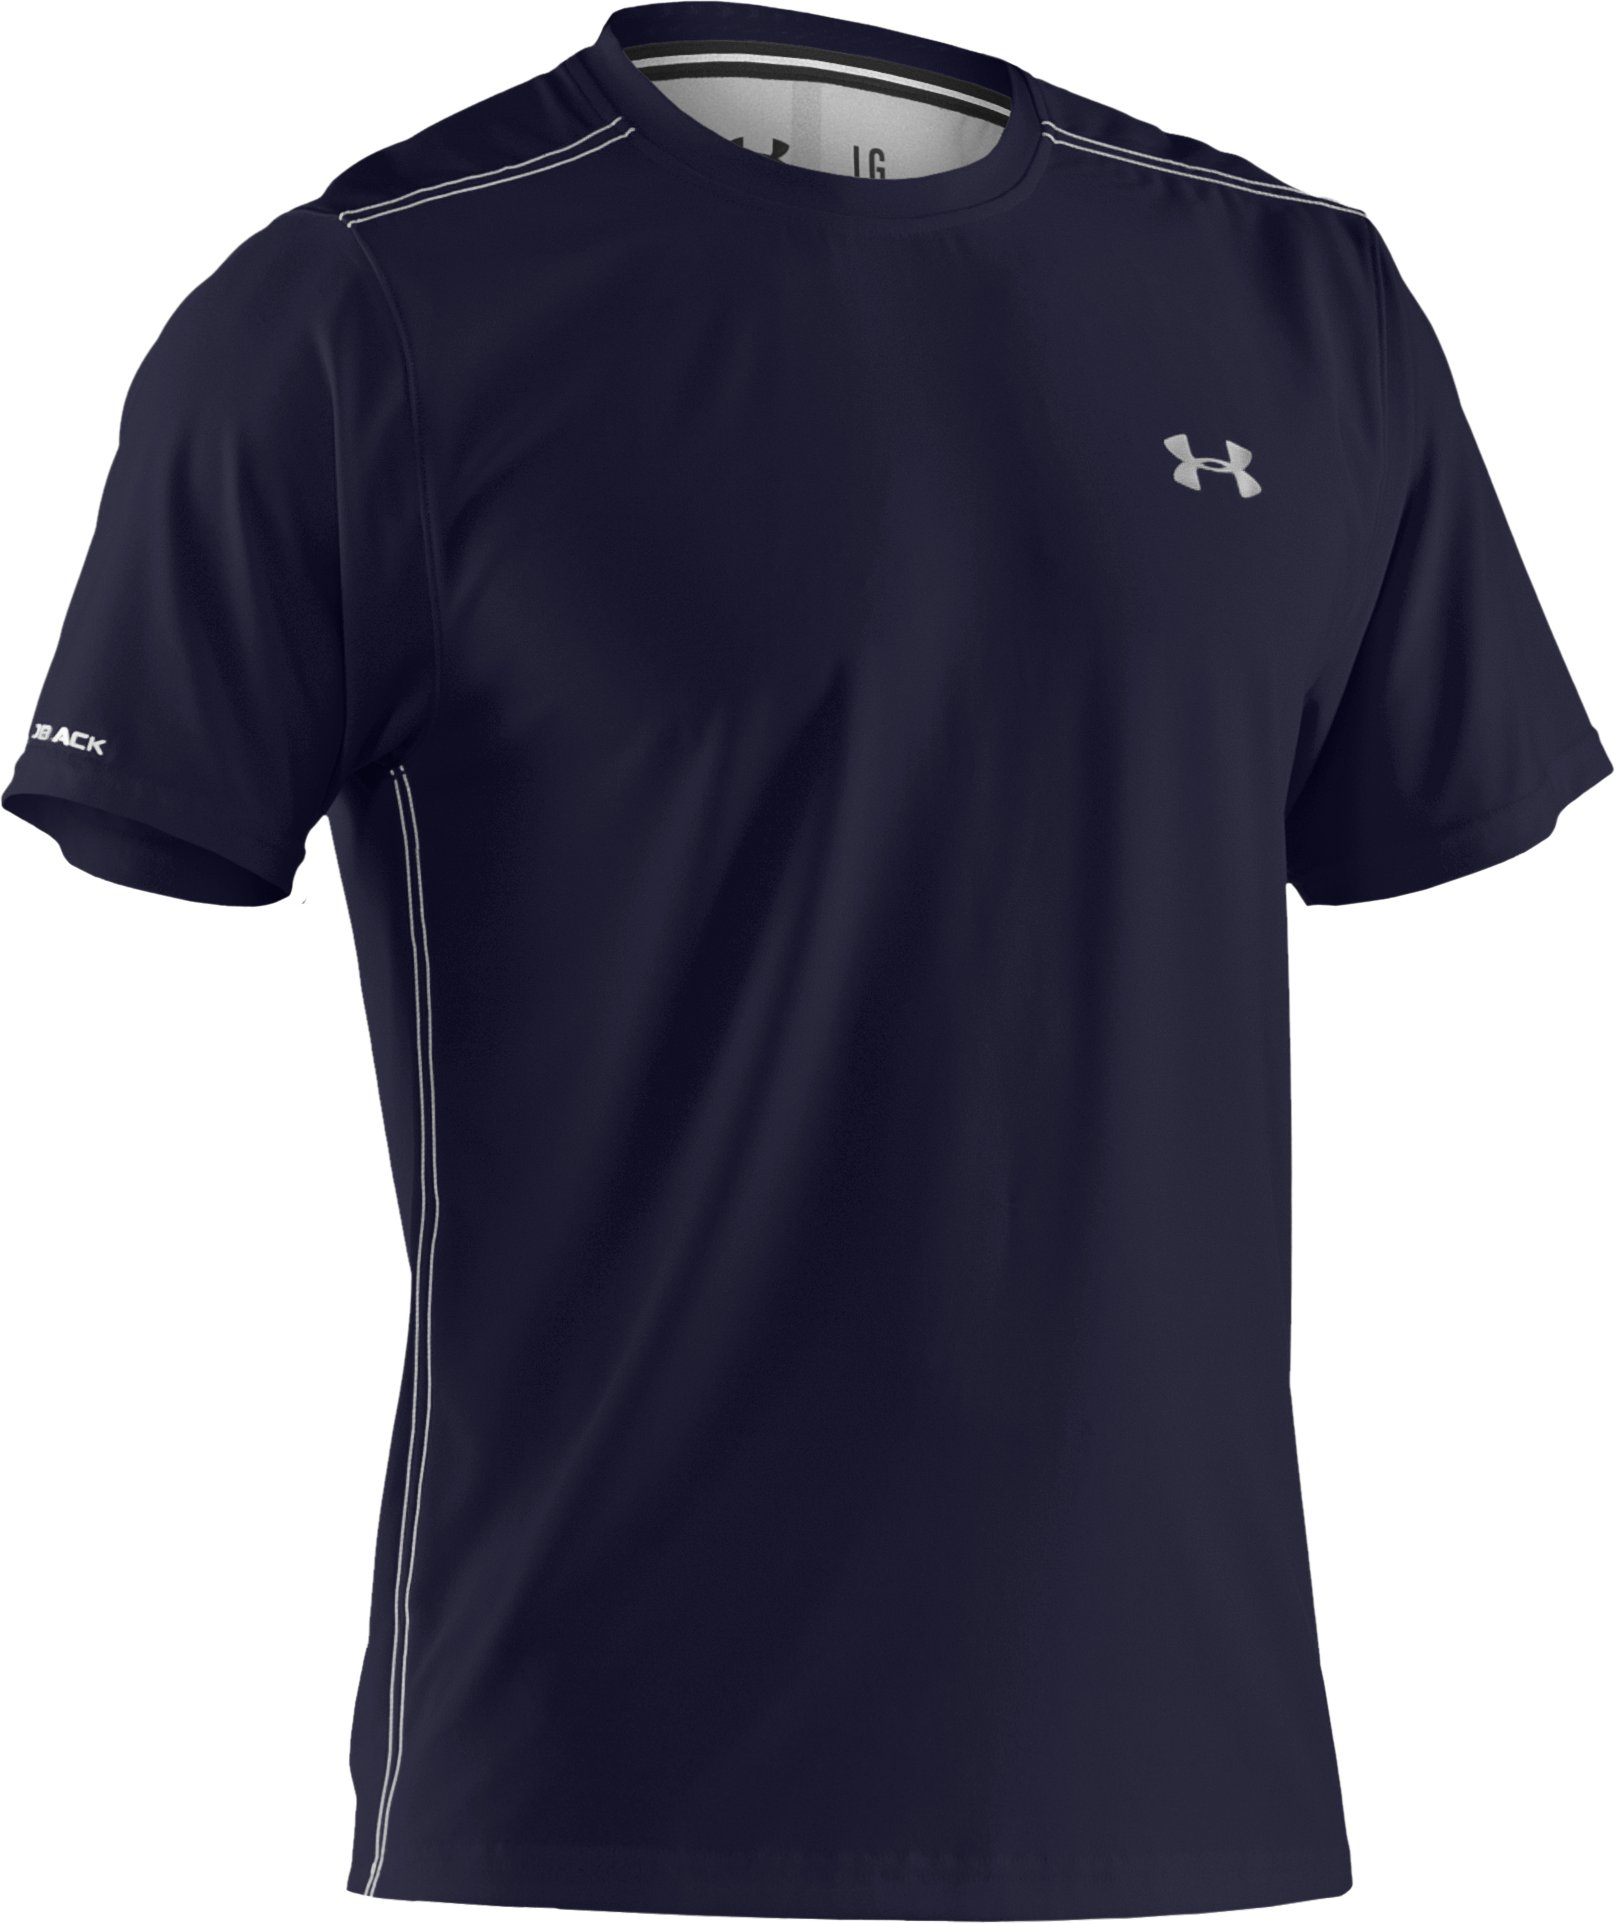 Men's coldblack® Short Sleeve T-Shirt, Midnight Navy,